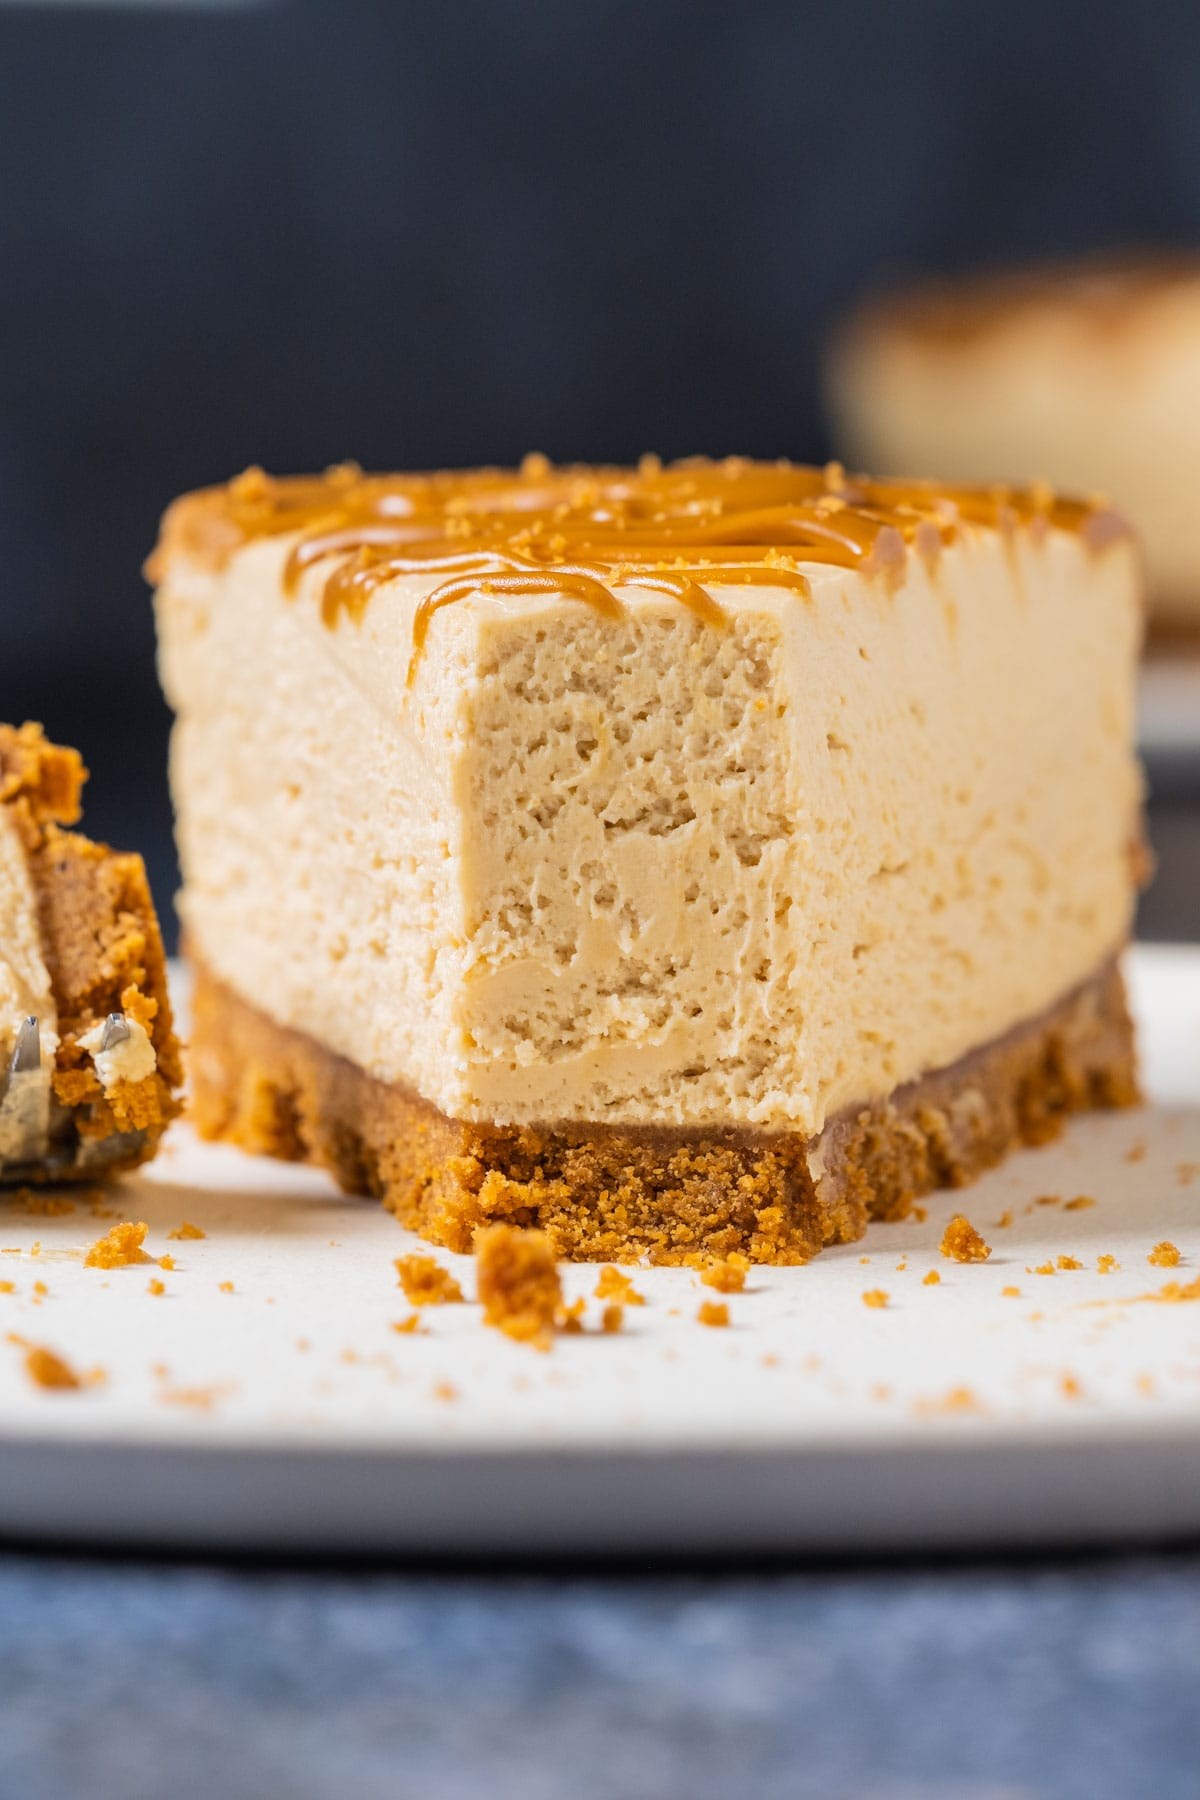 Slice of biscoff cheesecake on a white plate.